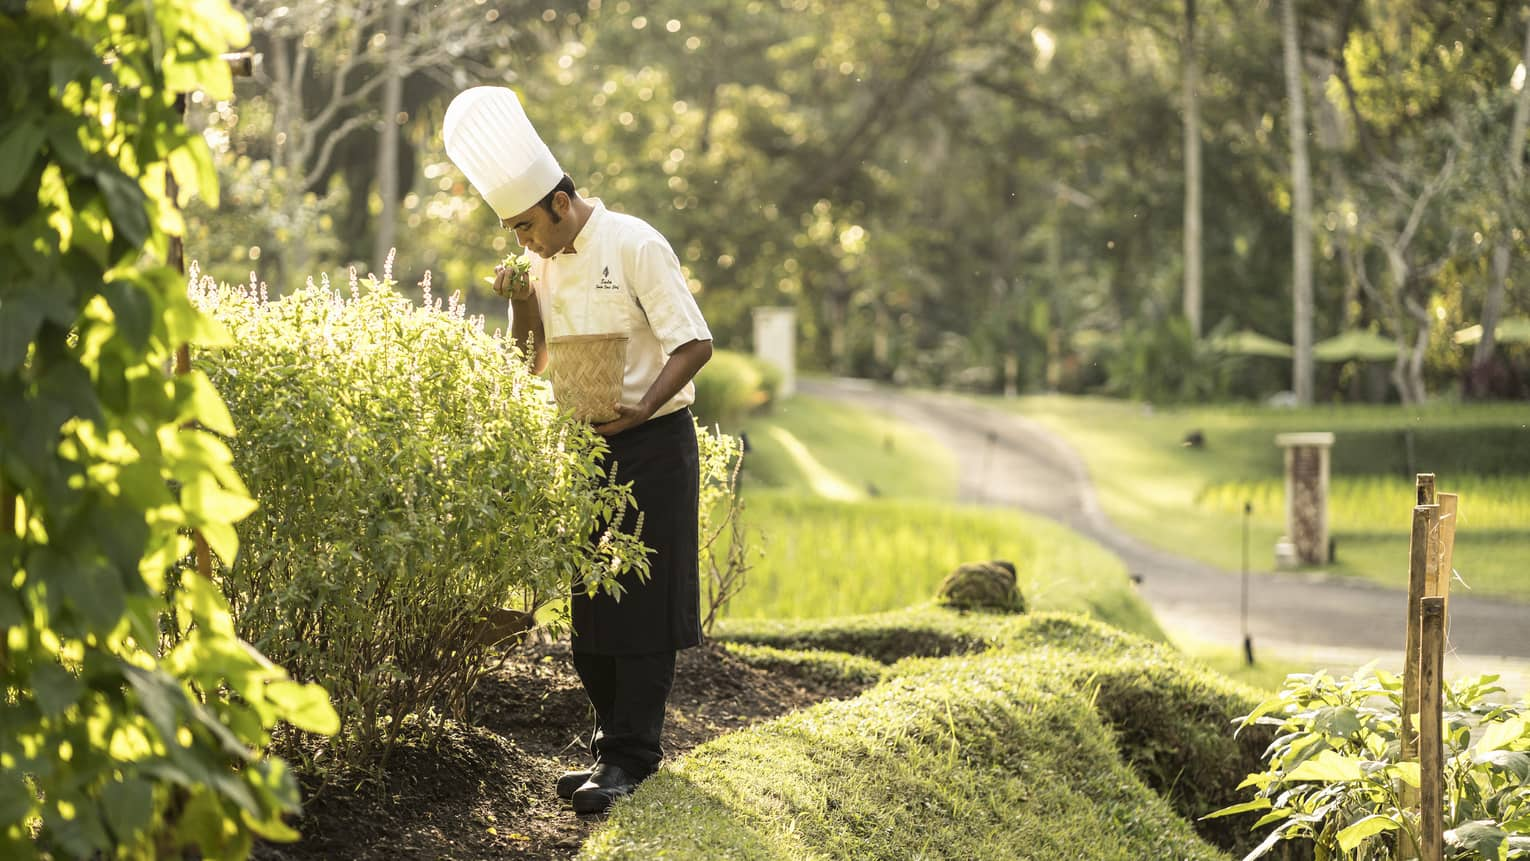 A chef collecting fresh vegetables and herbs from a garden to use in his creations